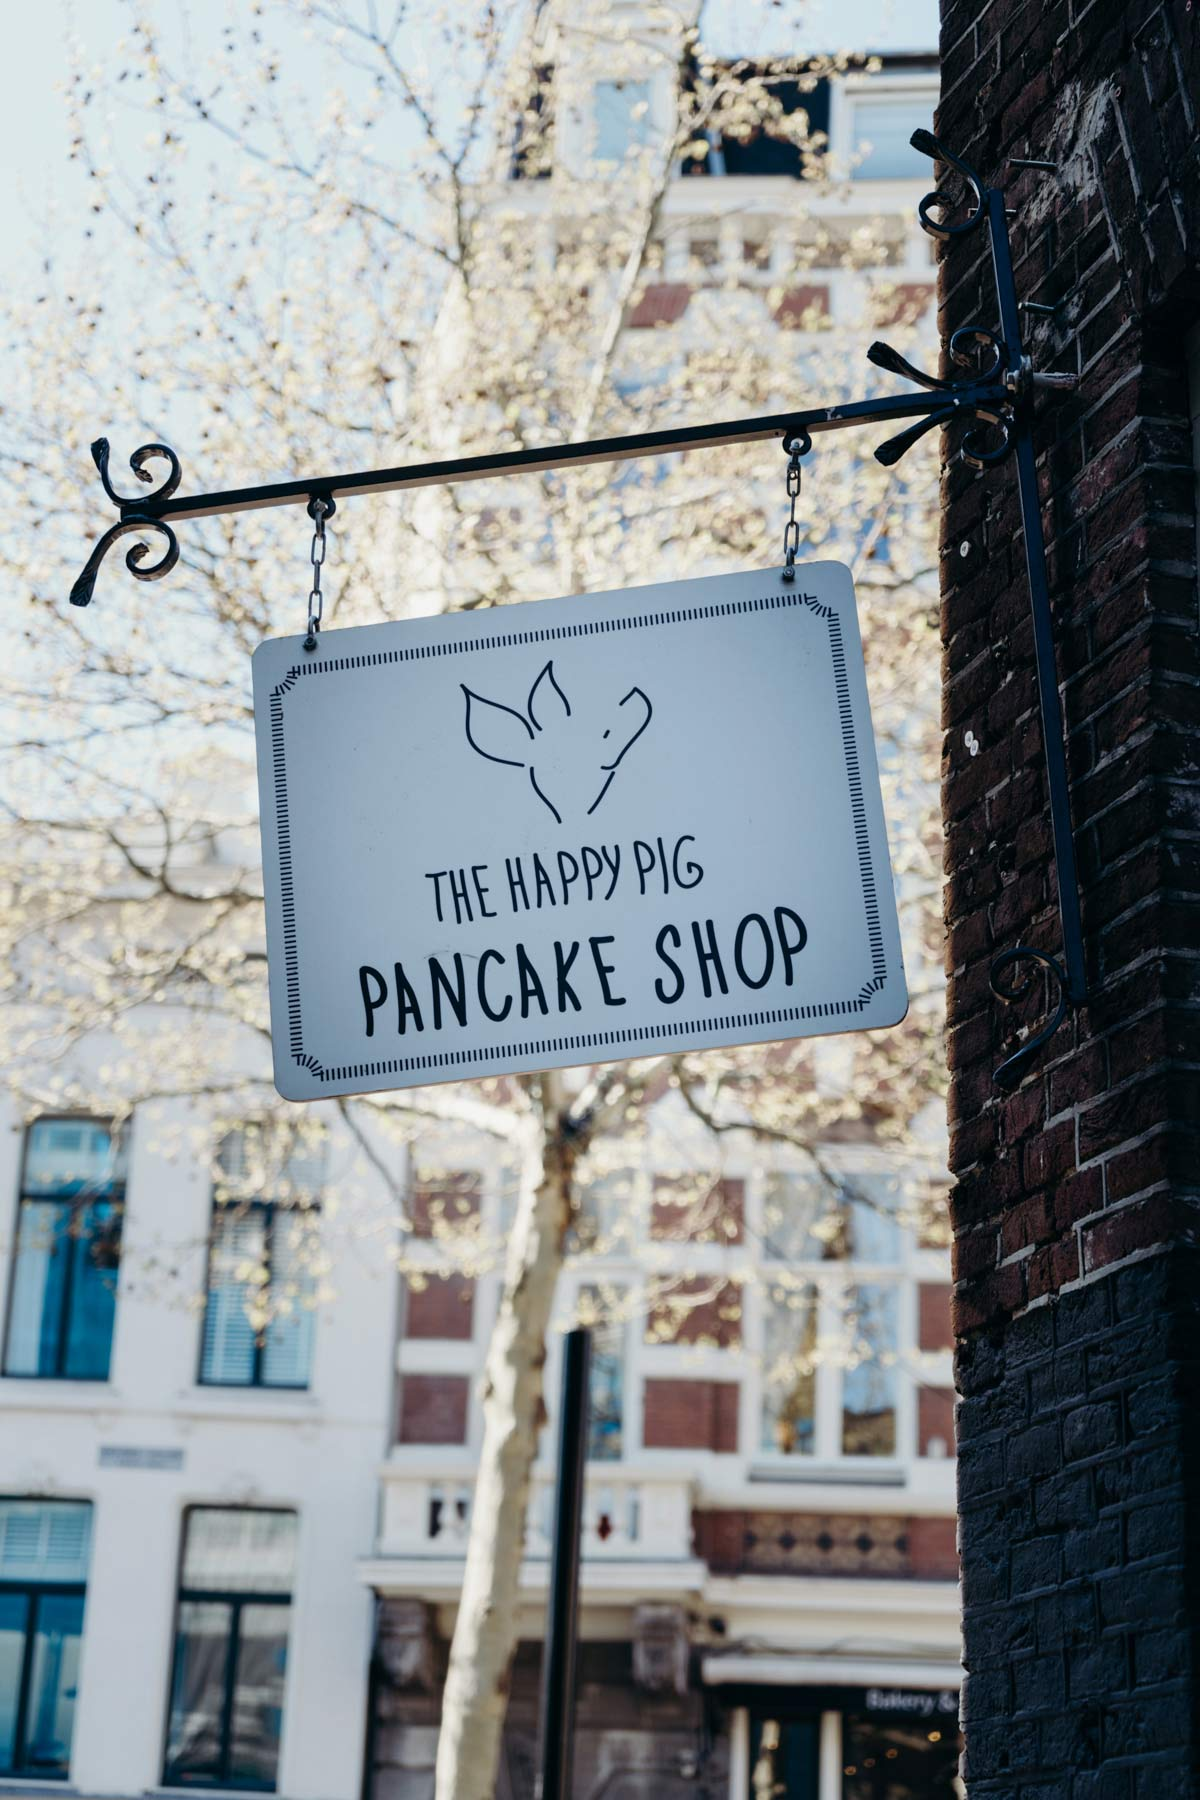 Happy Pig Pancake Shop